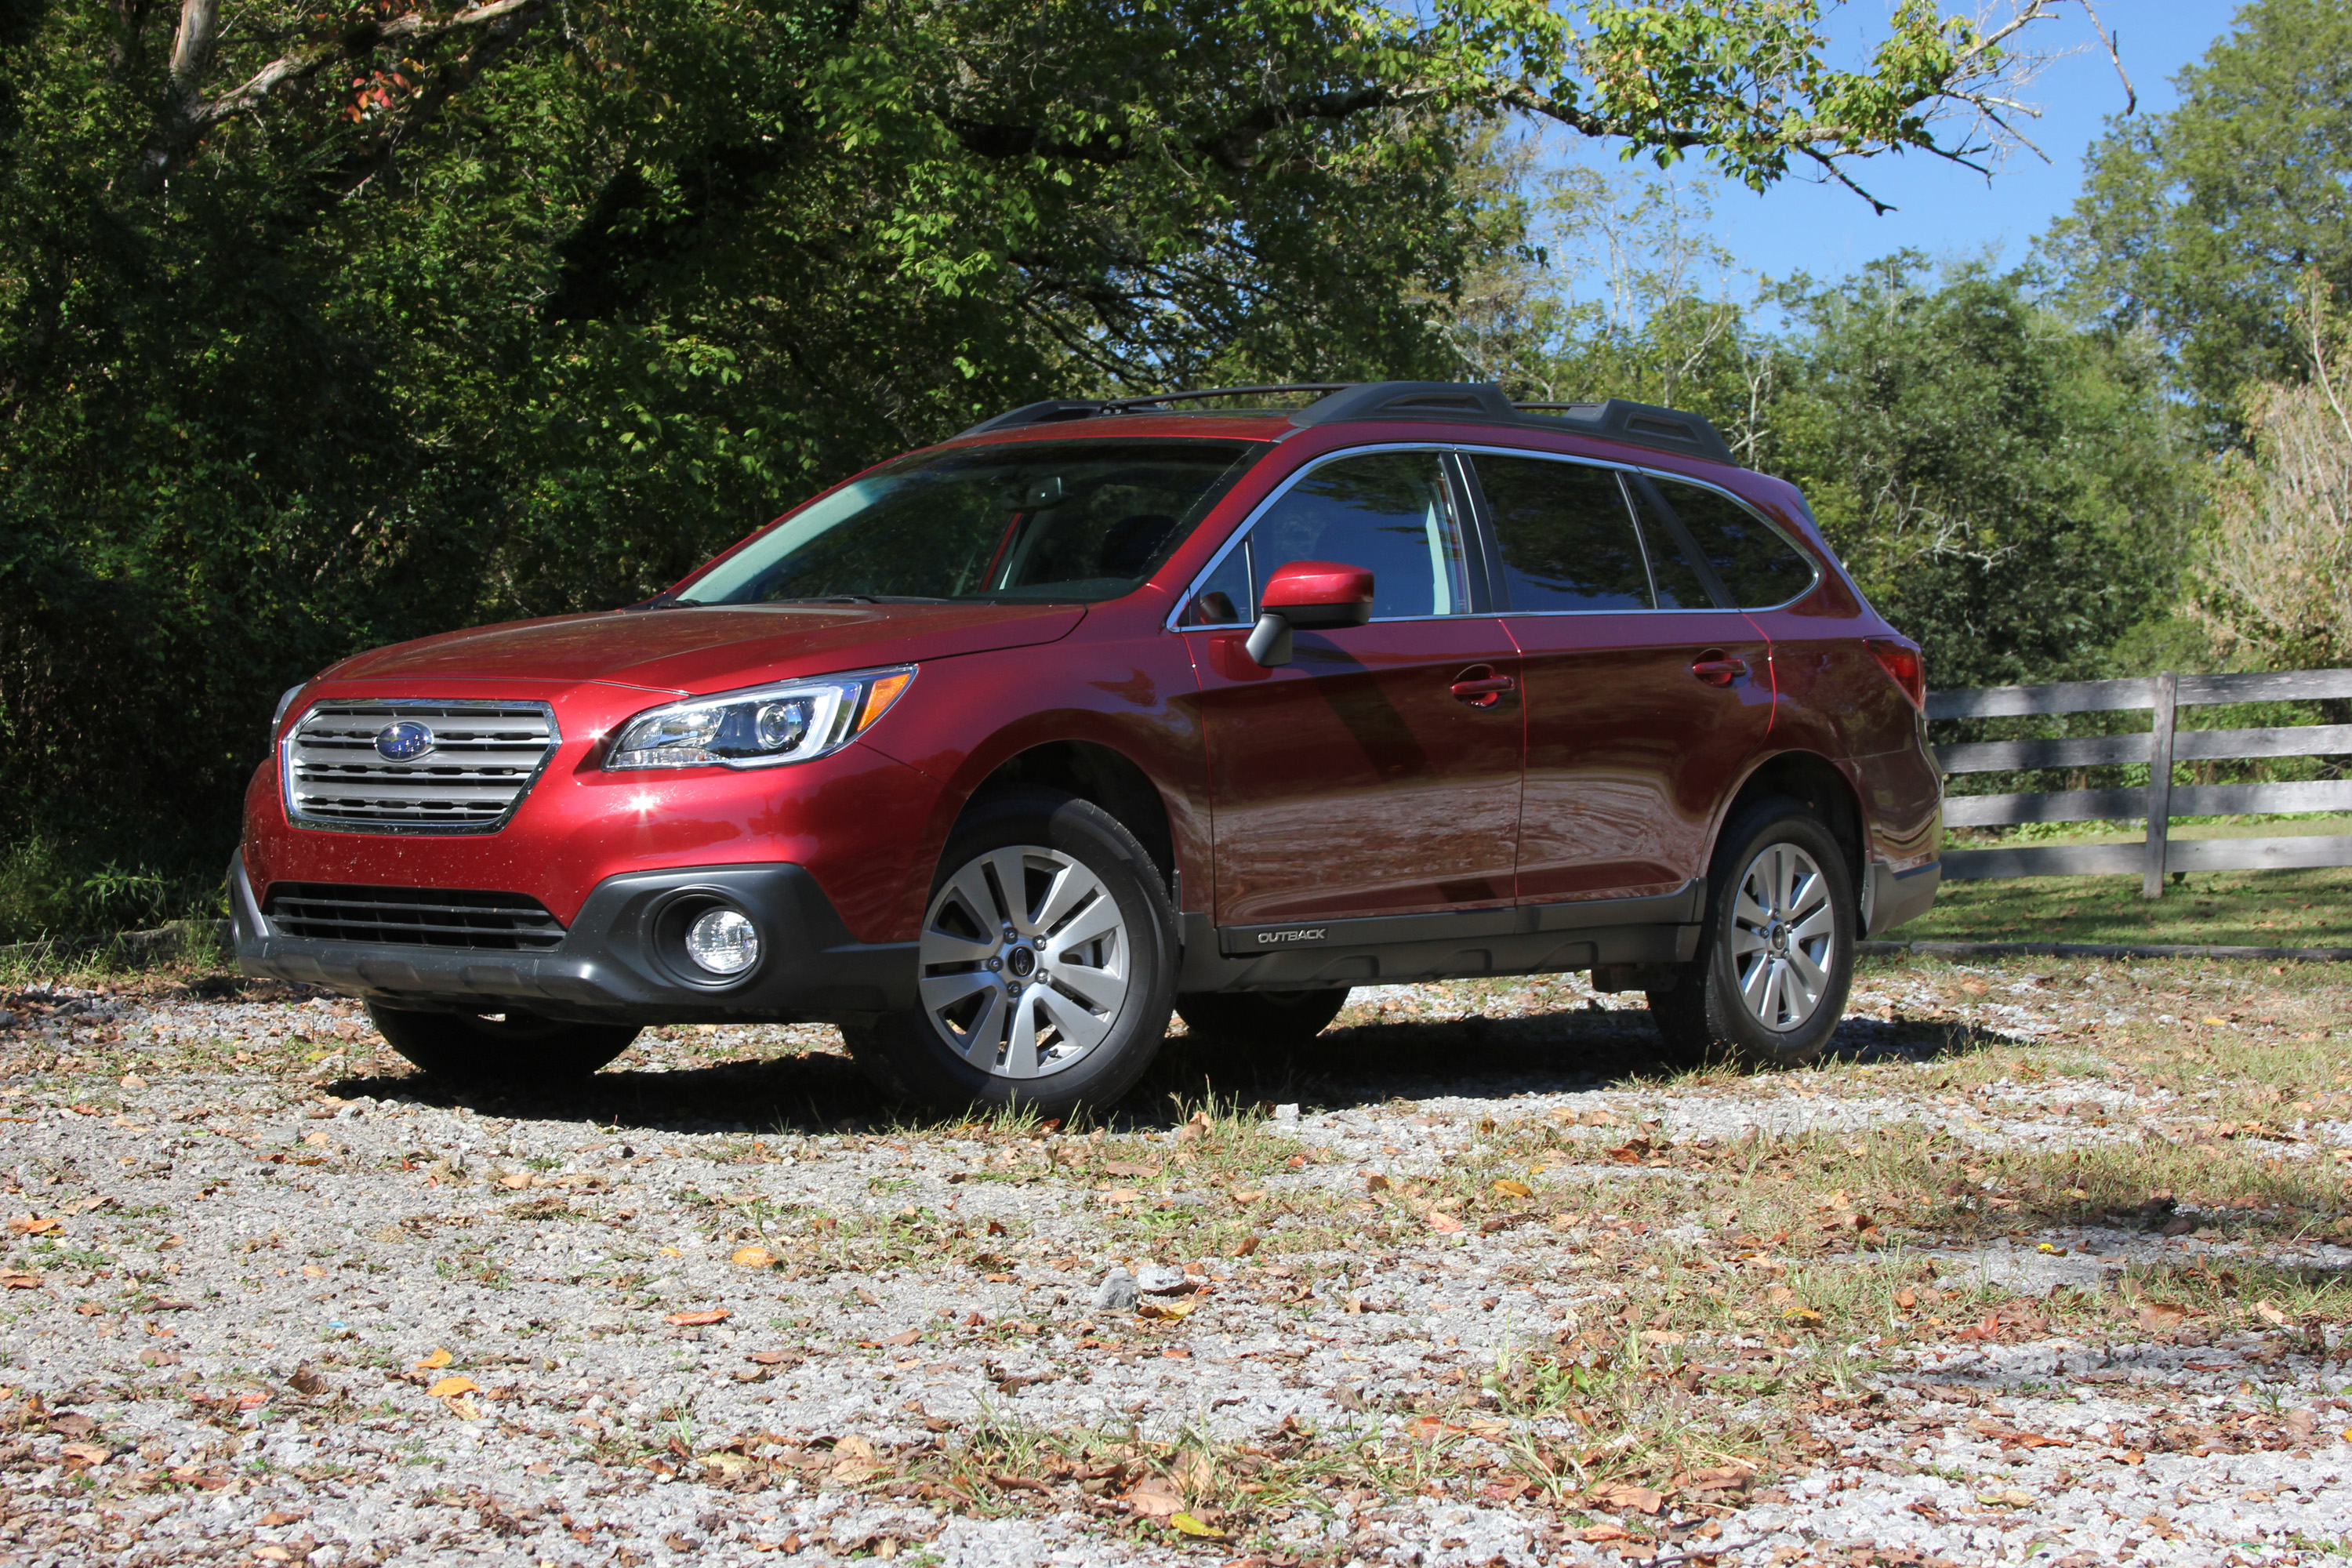 2015 Subaru Outback - Driven | Top Speed. »